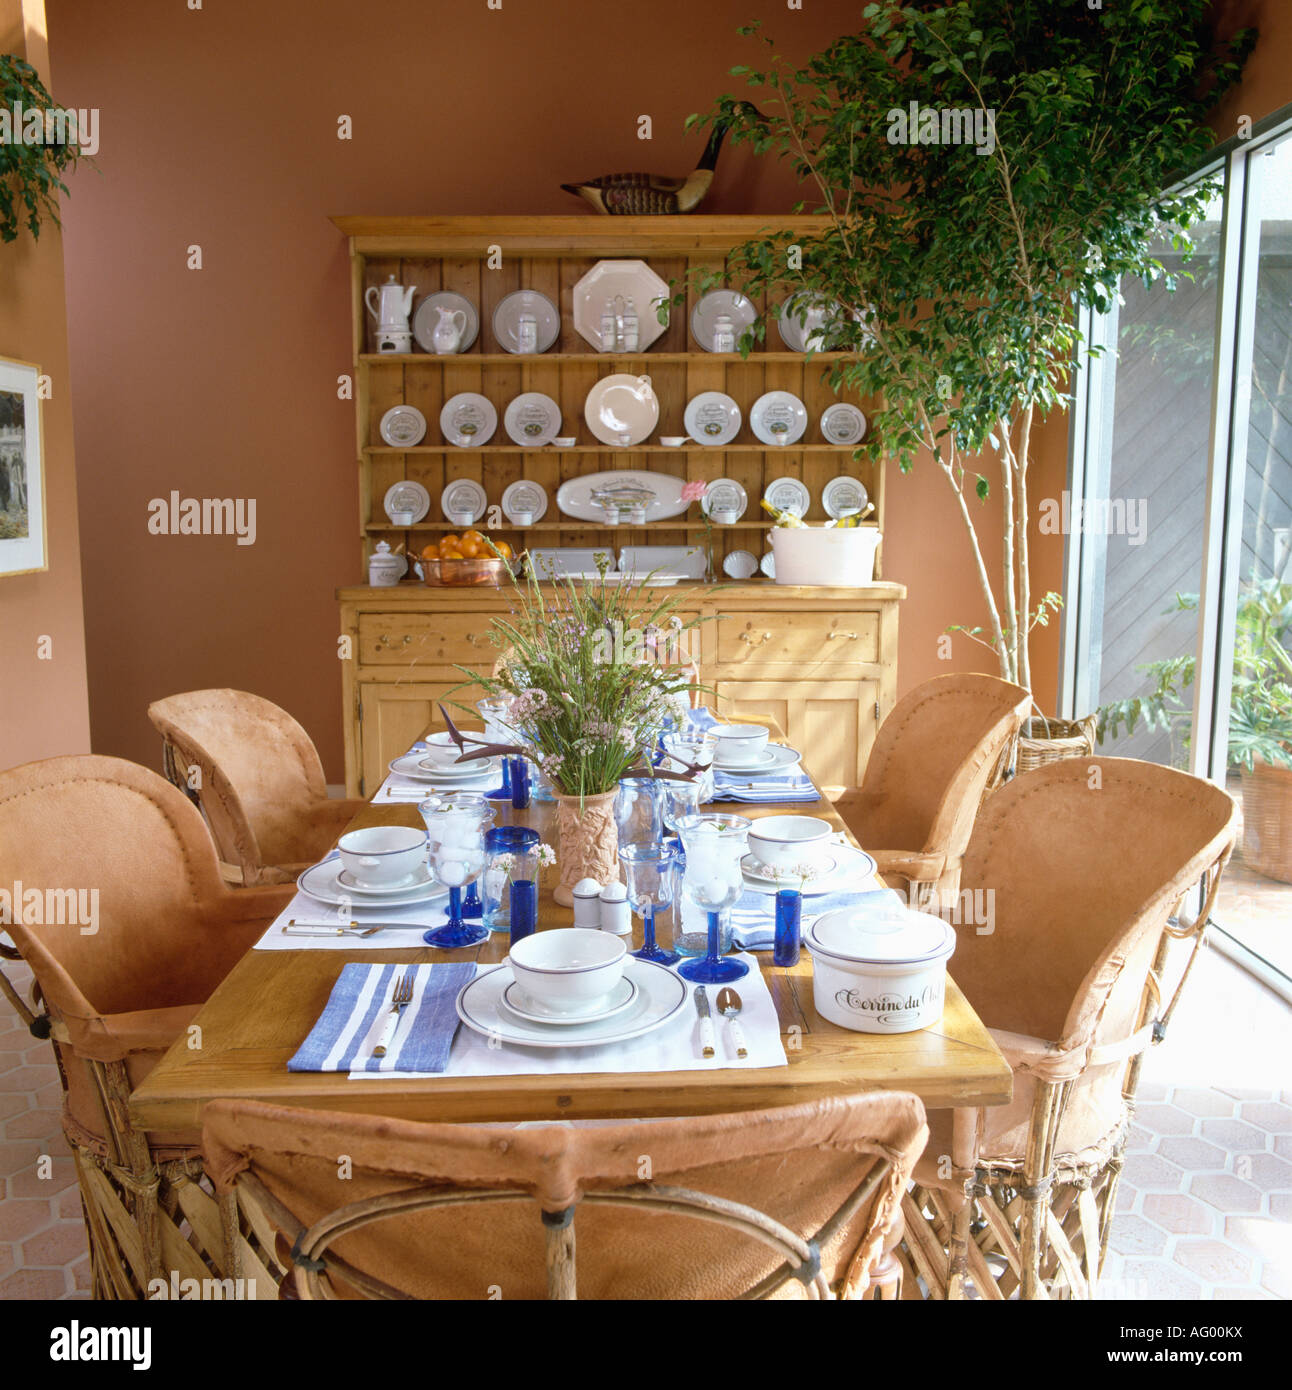 Pine Dresser And Leather Cane Chairs In Terracotta Dining Room With Tall Green Plant Corner Blue Glasses On The Table